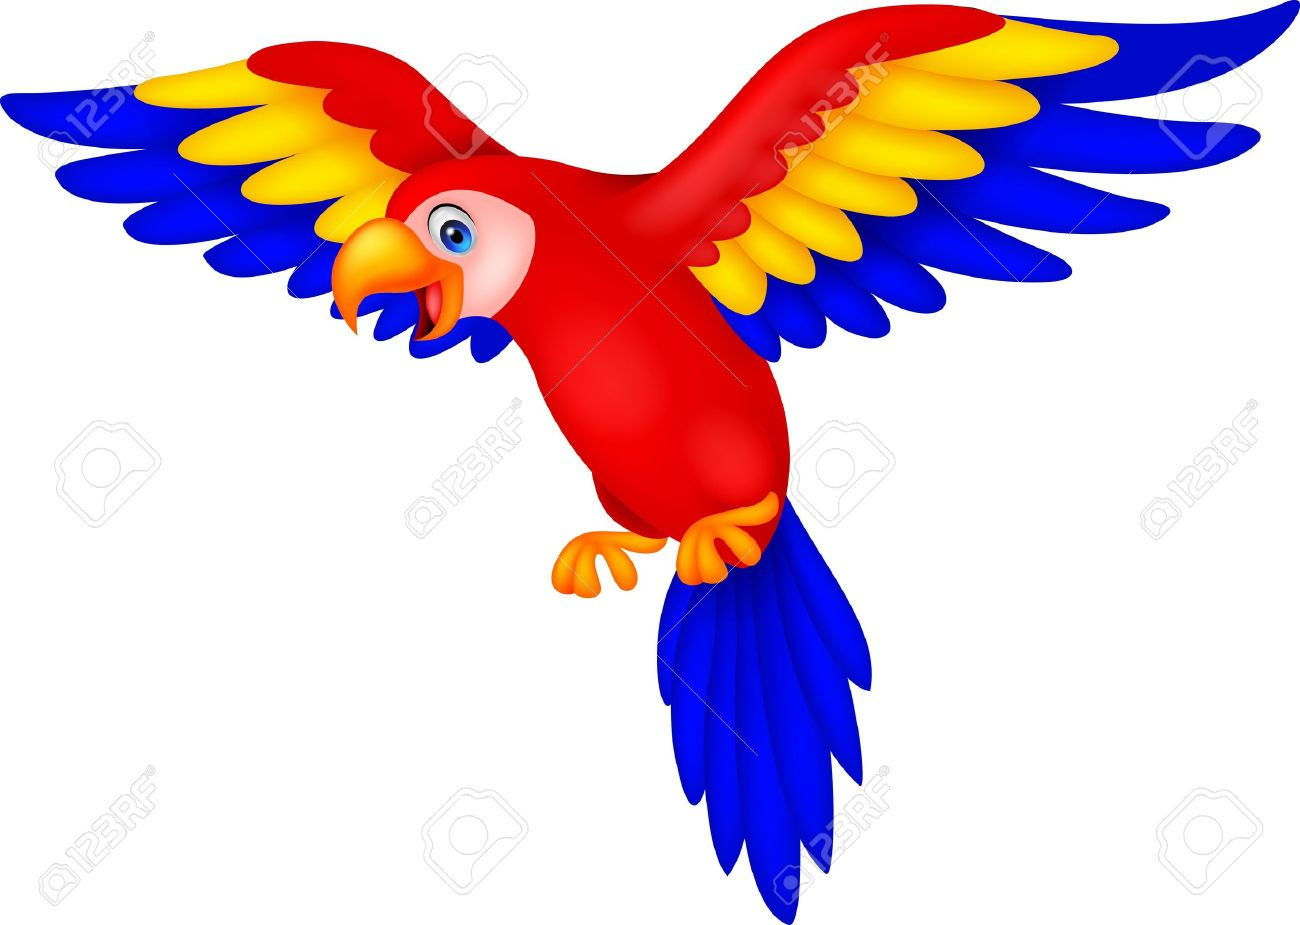 Fly Parrot.